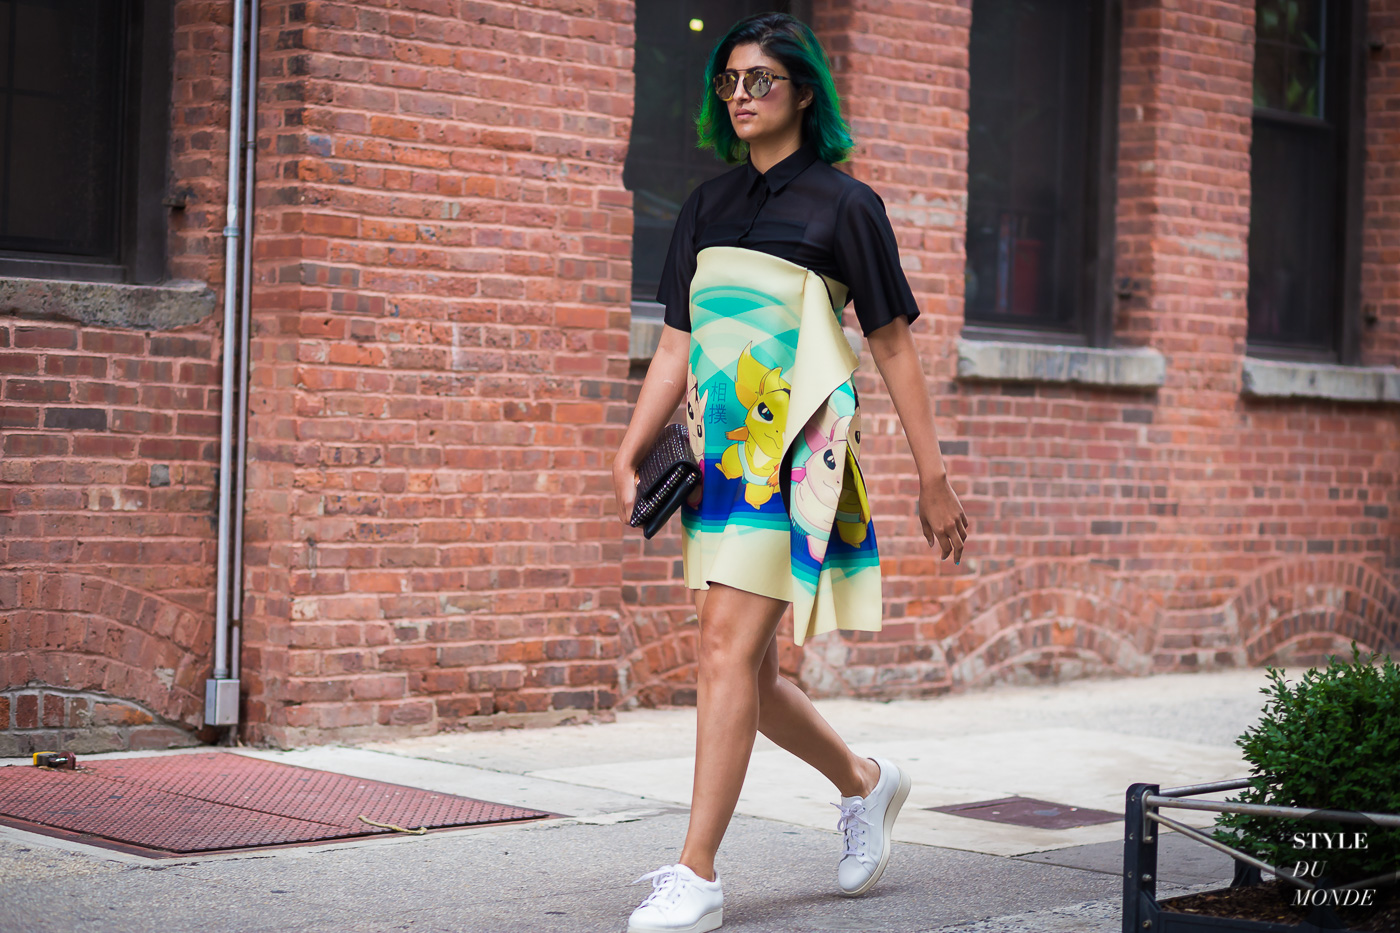 Preetma Singh Street Style Street Fashion Streetsnaps by STYLEDUMONDE Street Style Fashion Photography